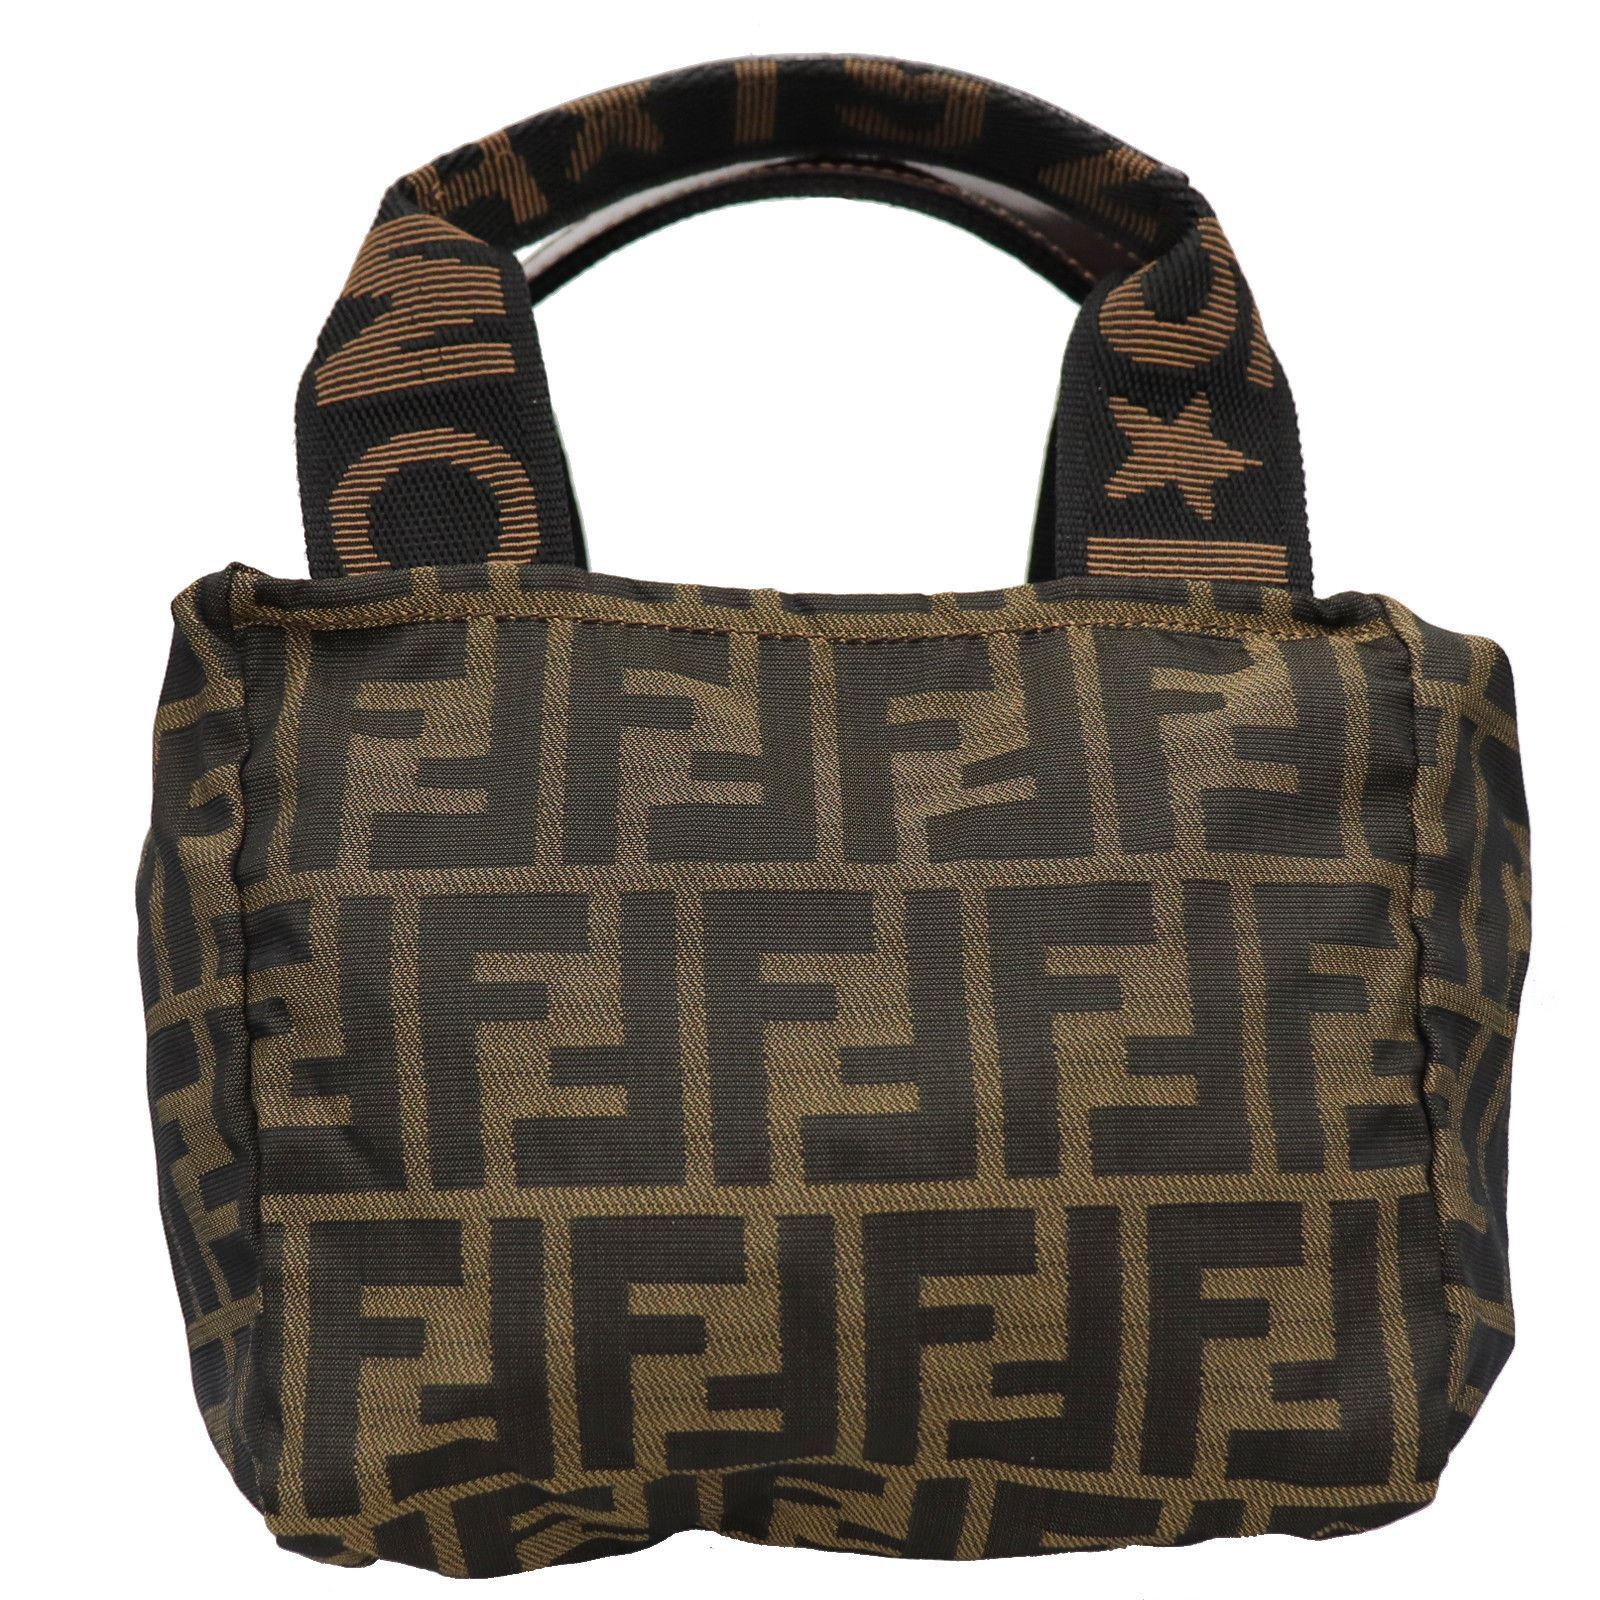 b73a707ab034 Vintage and Musthaves. Fendi Zucca Pattern handbag